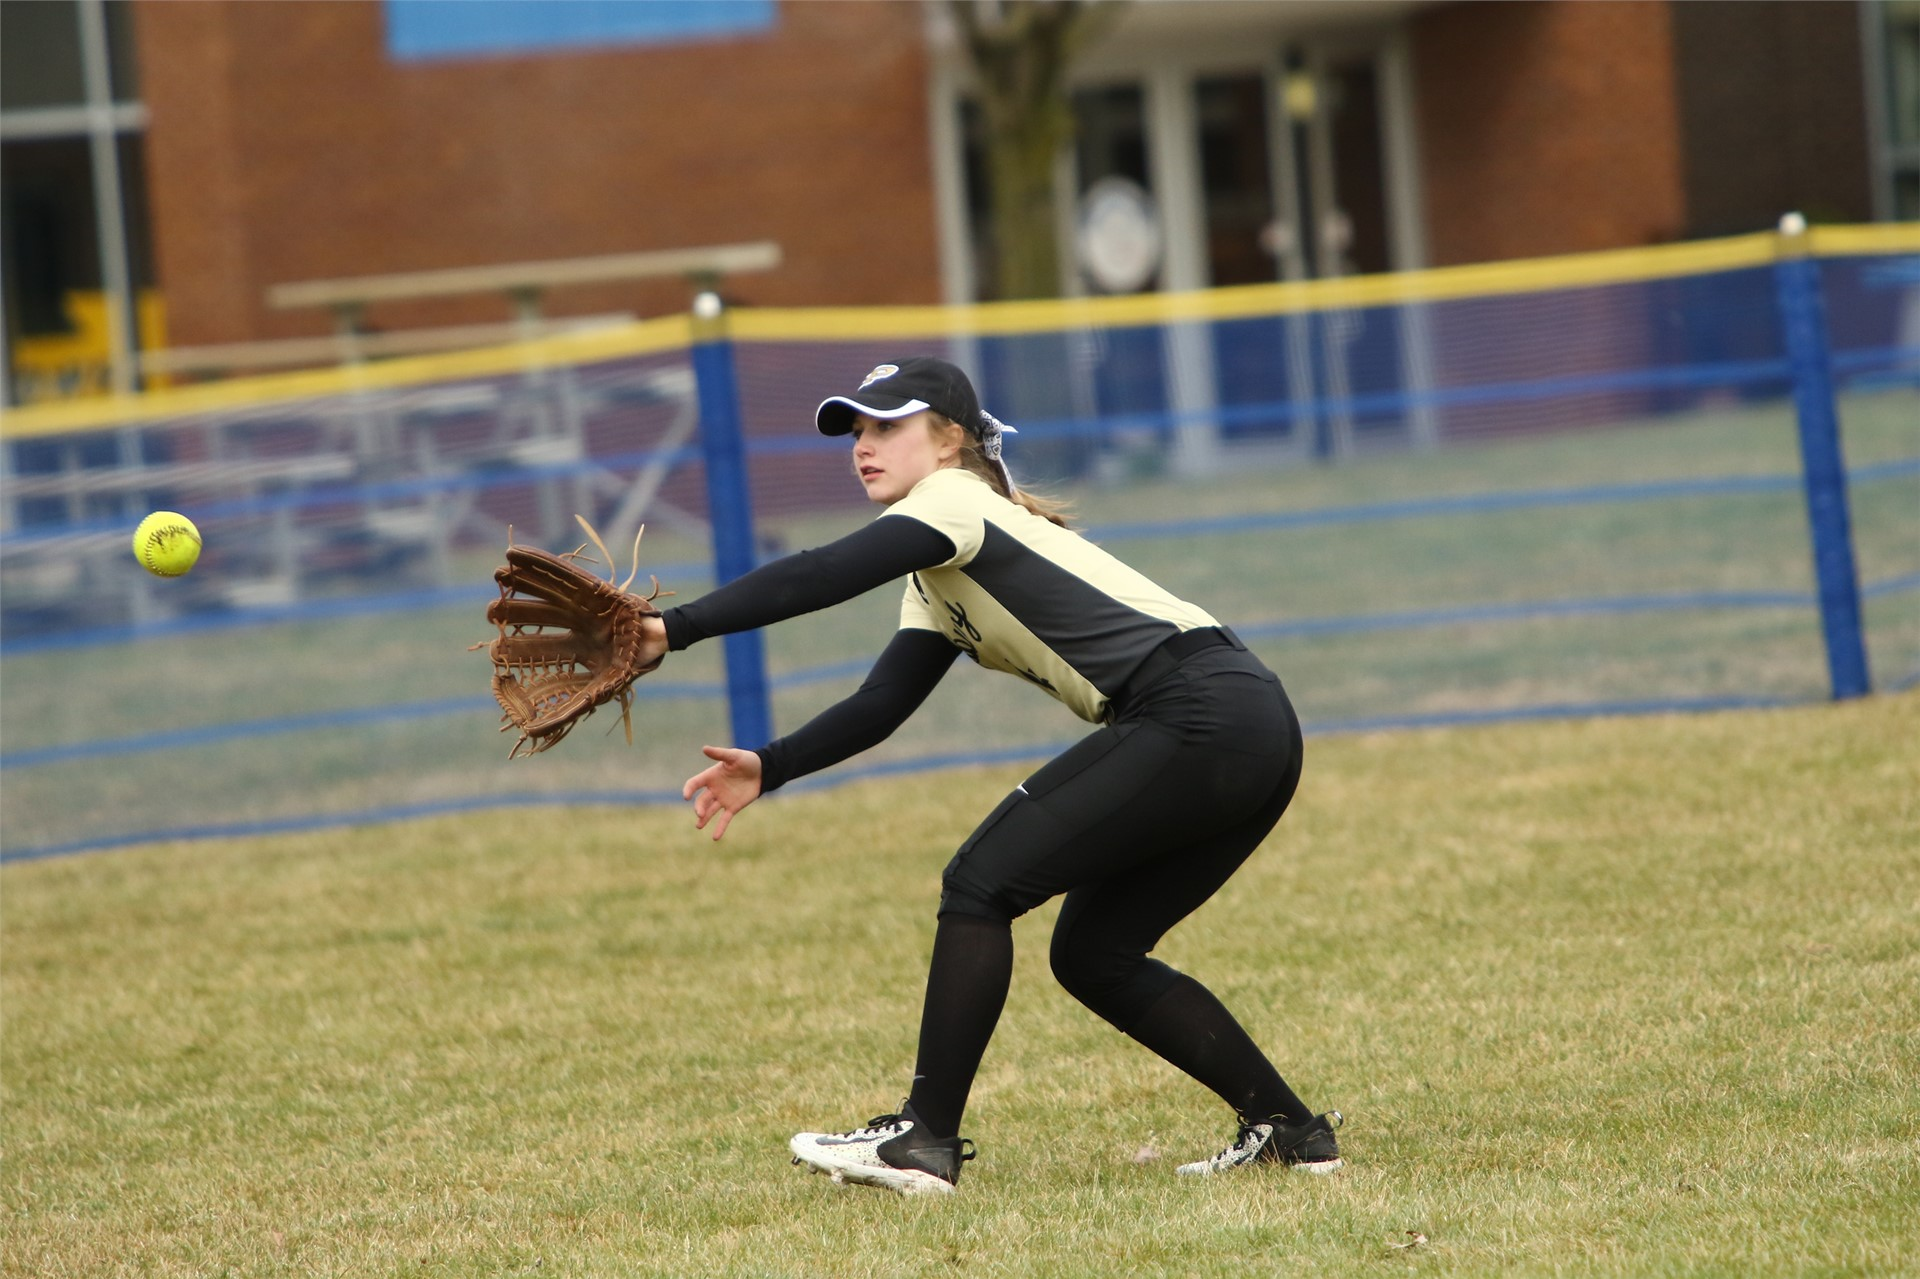 softball player catching